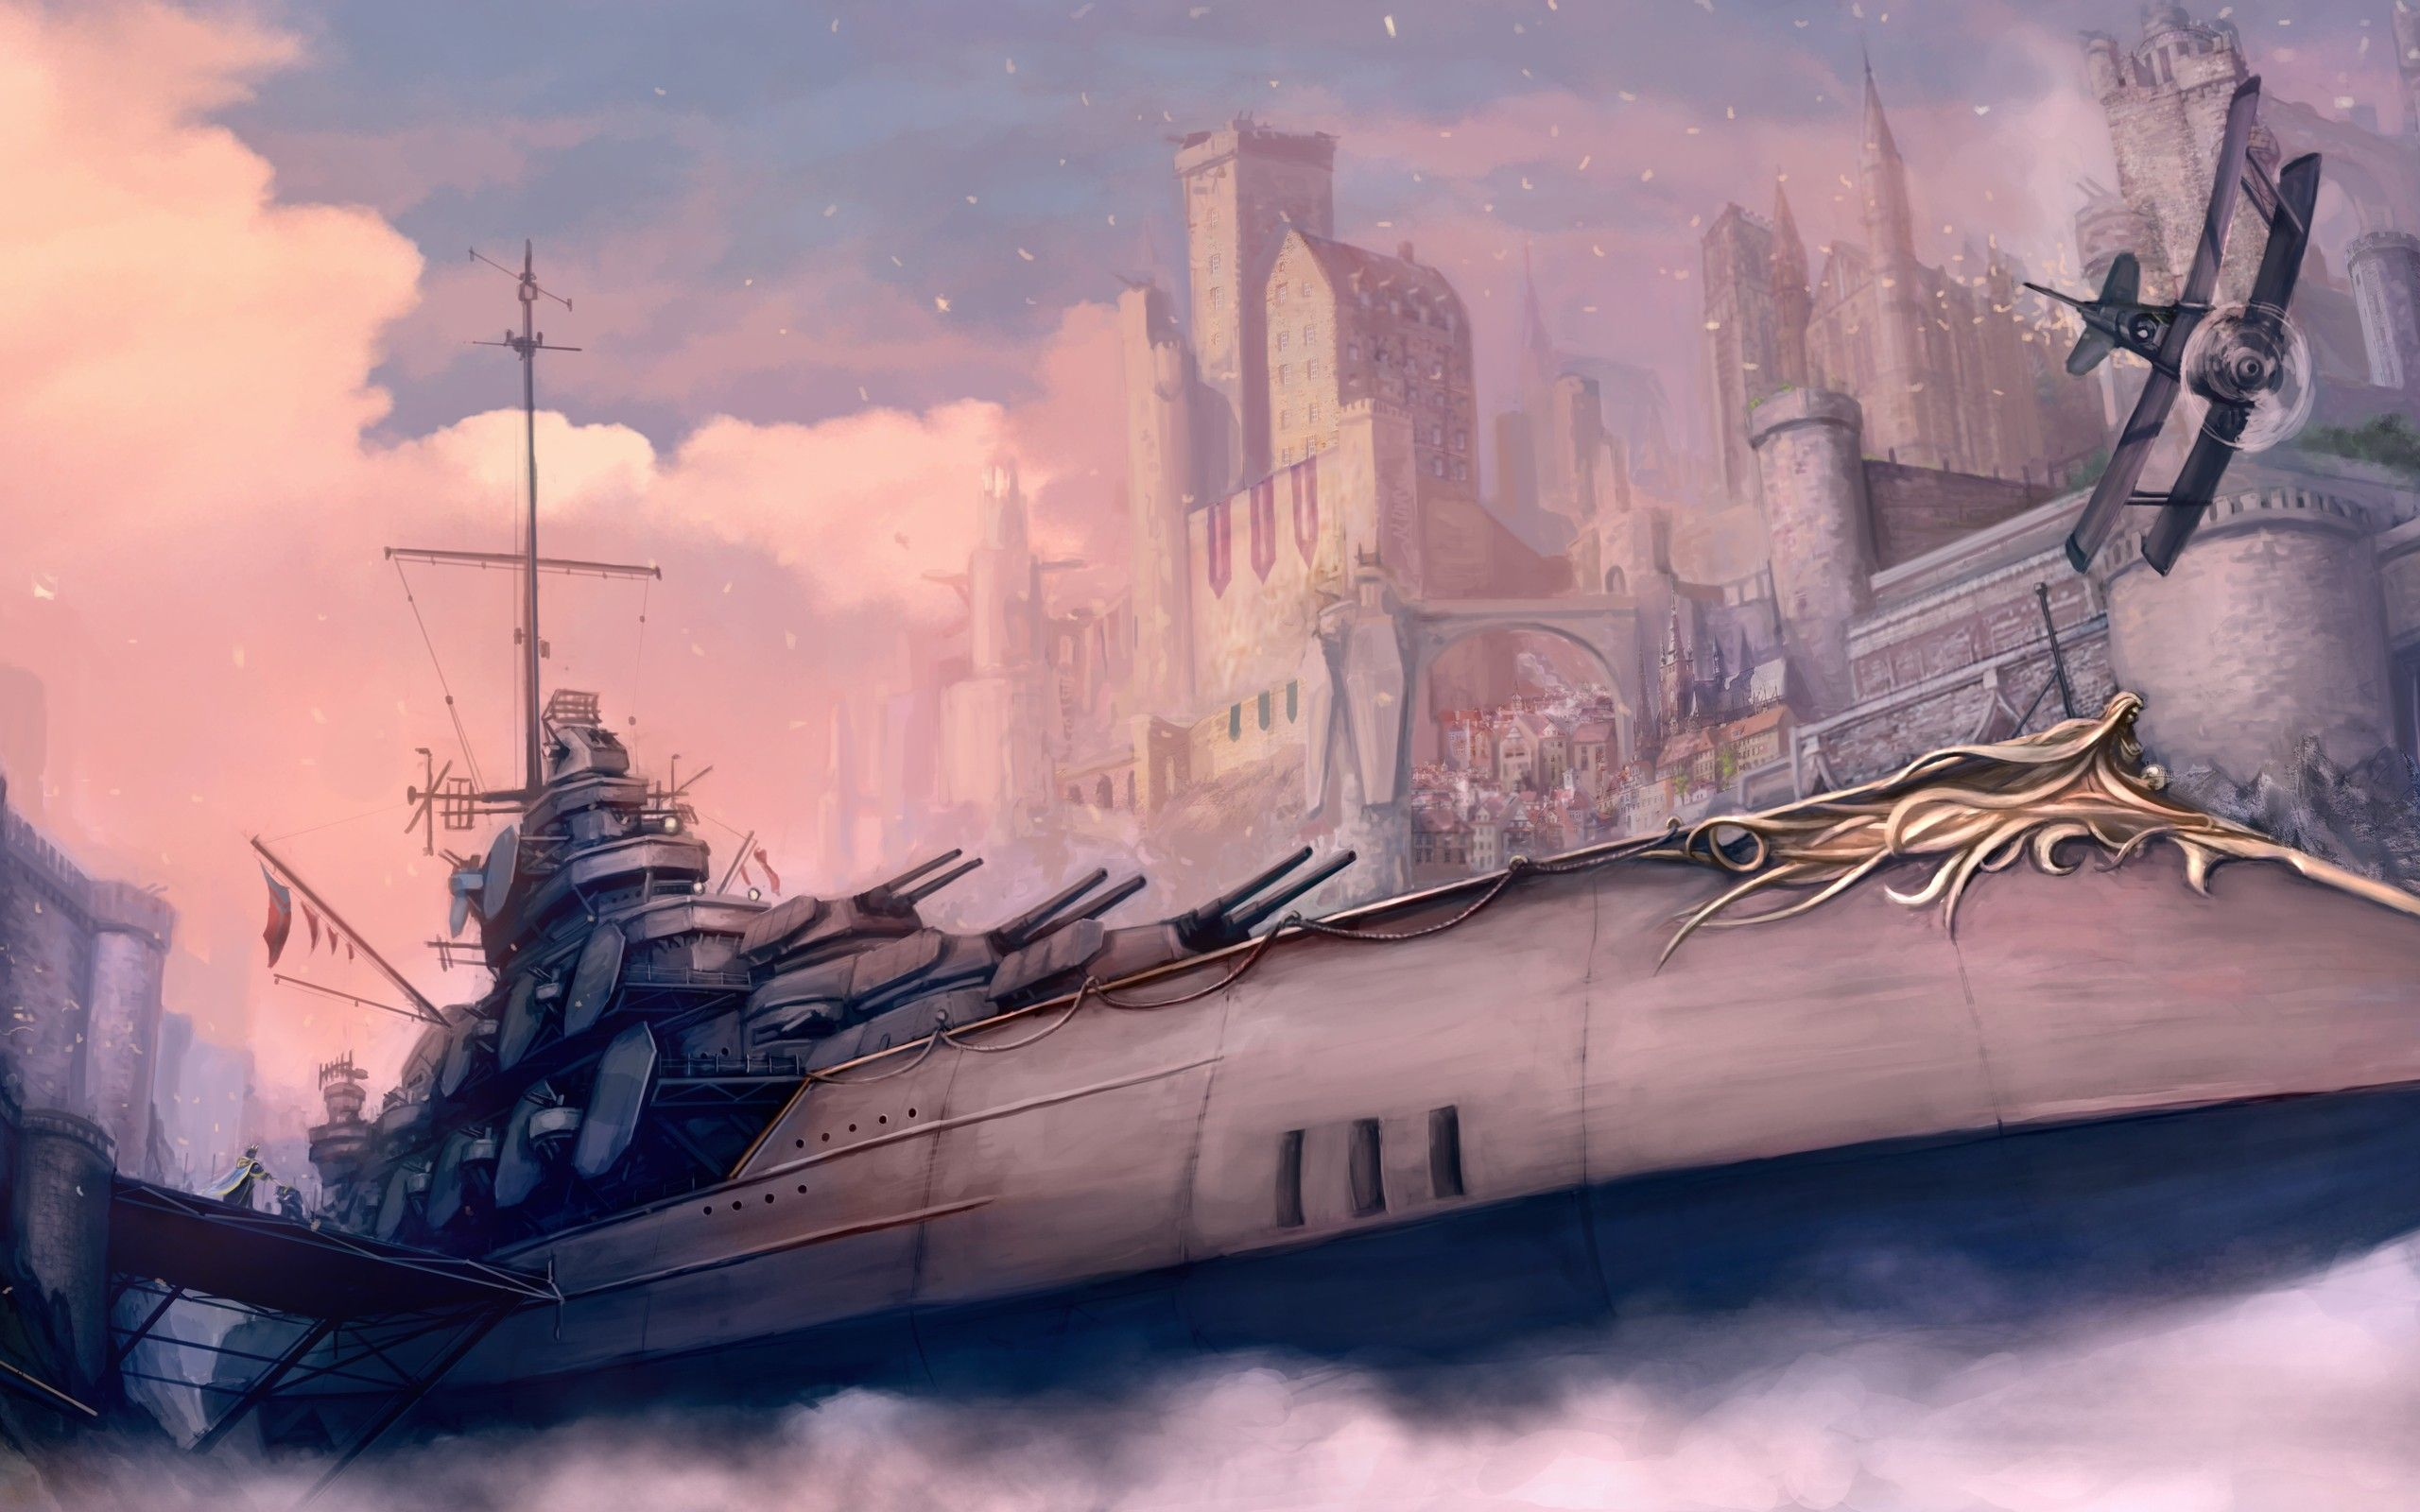 Steampunk Art | Battle Ship – Steampunk wallpaper of a ...